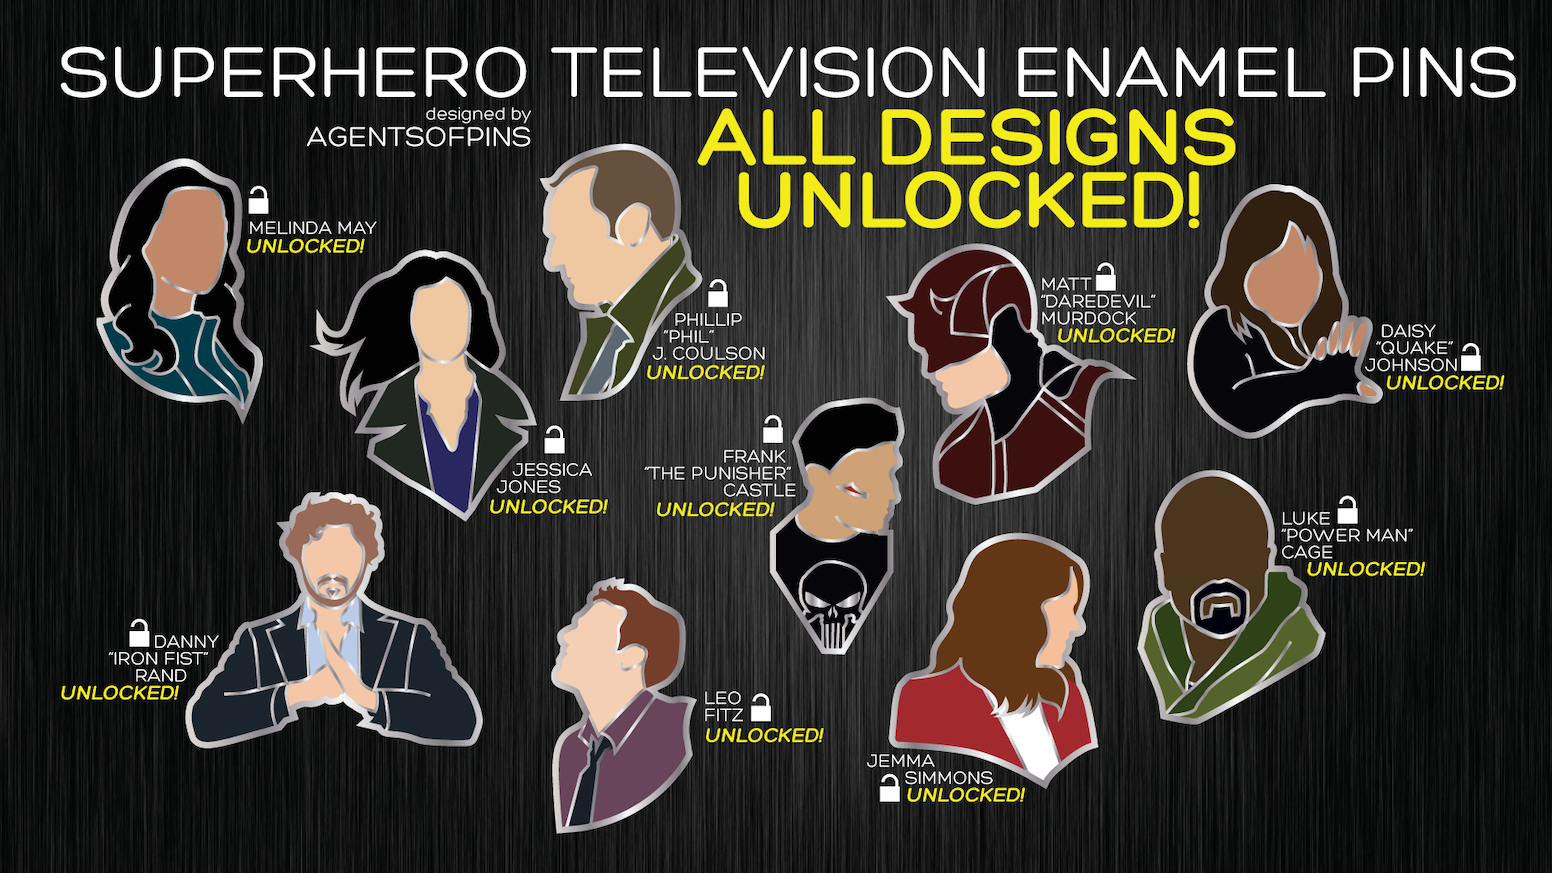 A selection of enamel pins inspired by characters from Marvel Television, including both Marvel Netflix and Marvel's Agents of SHIELD.